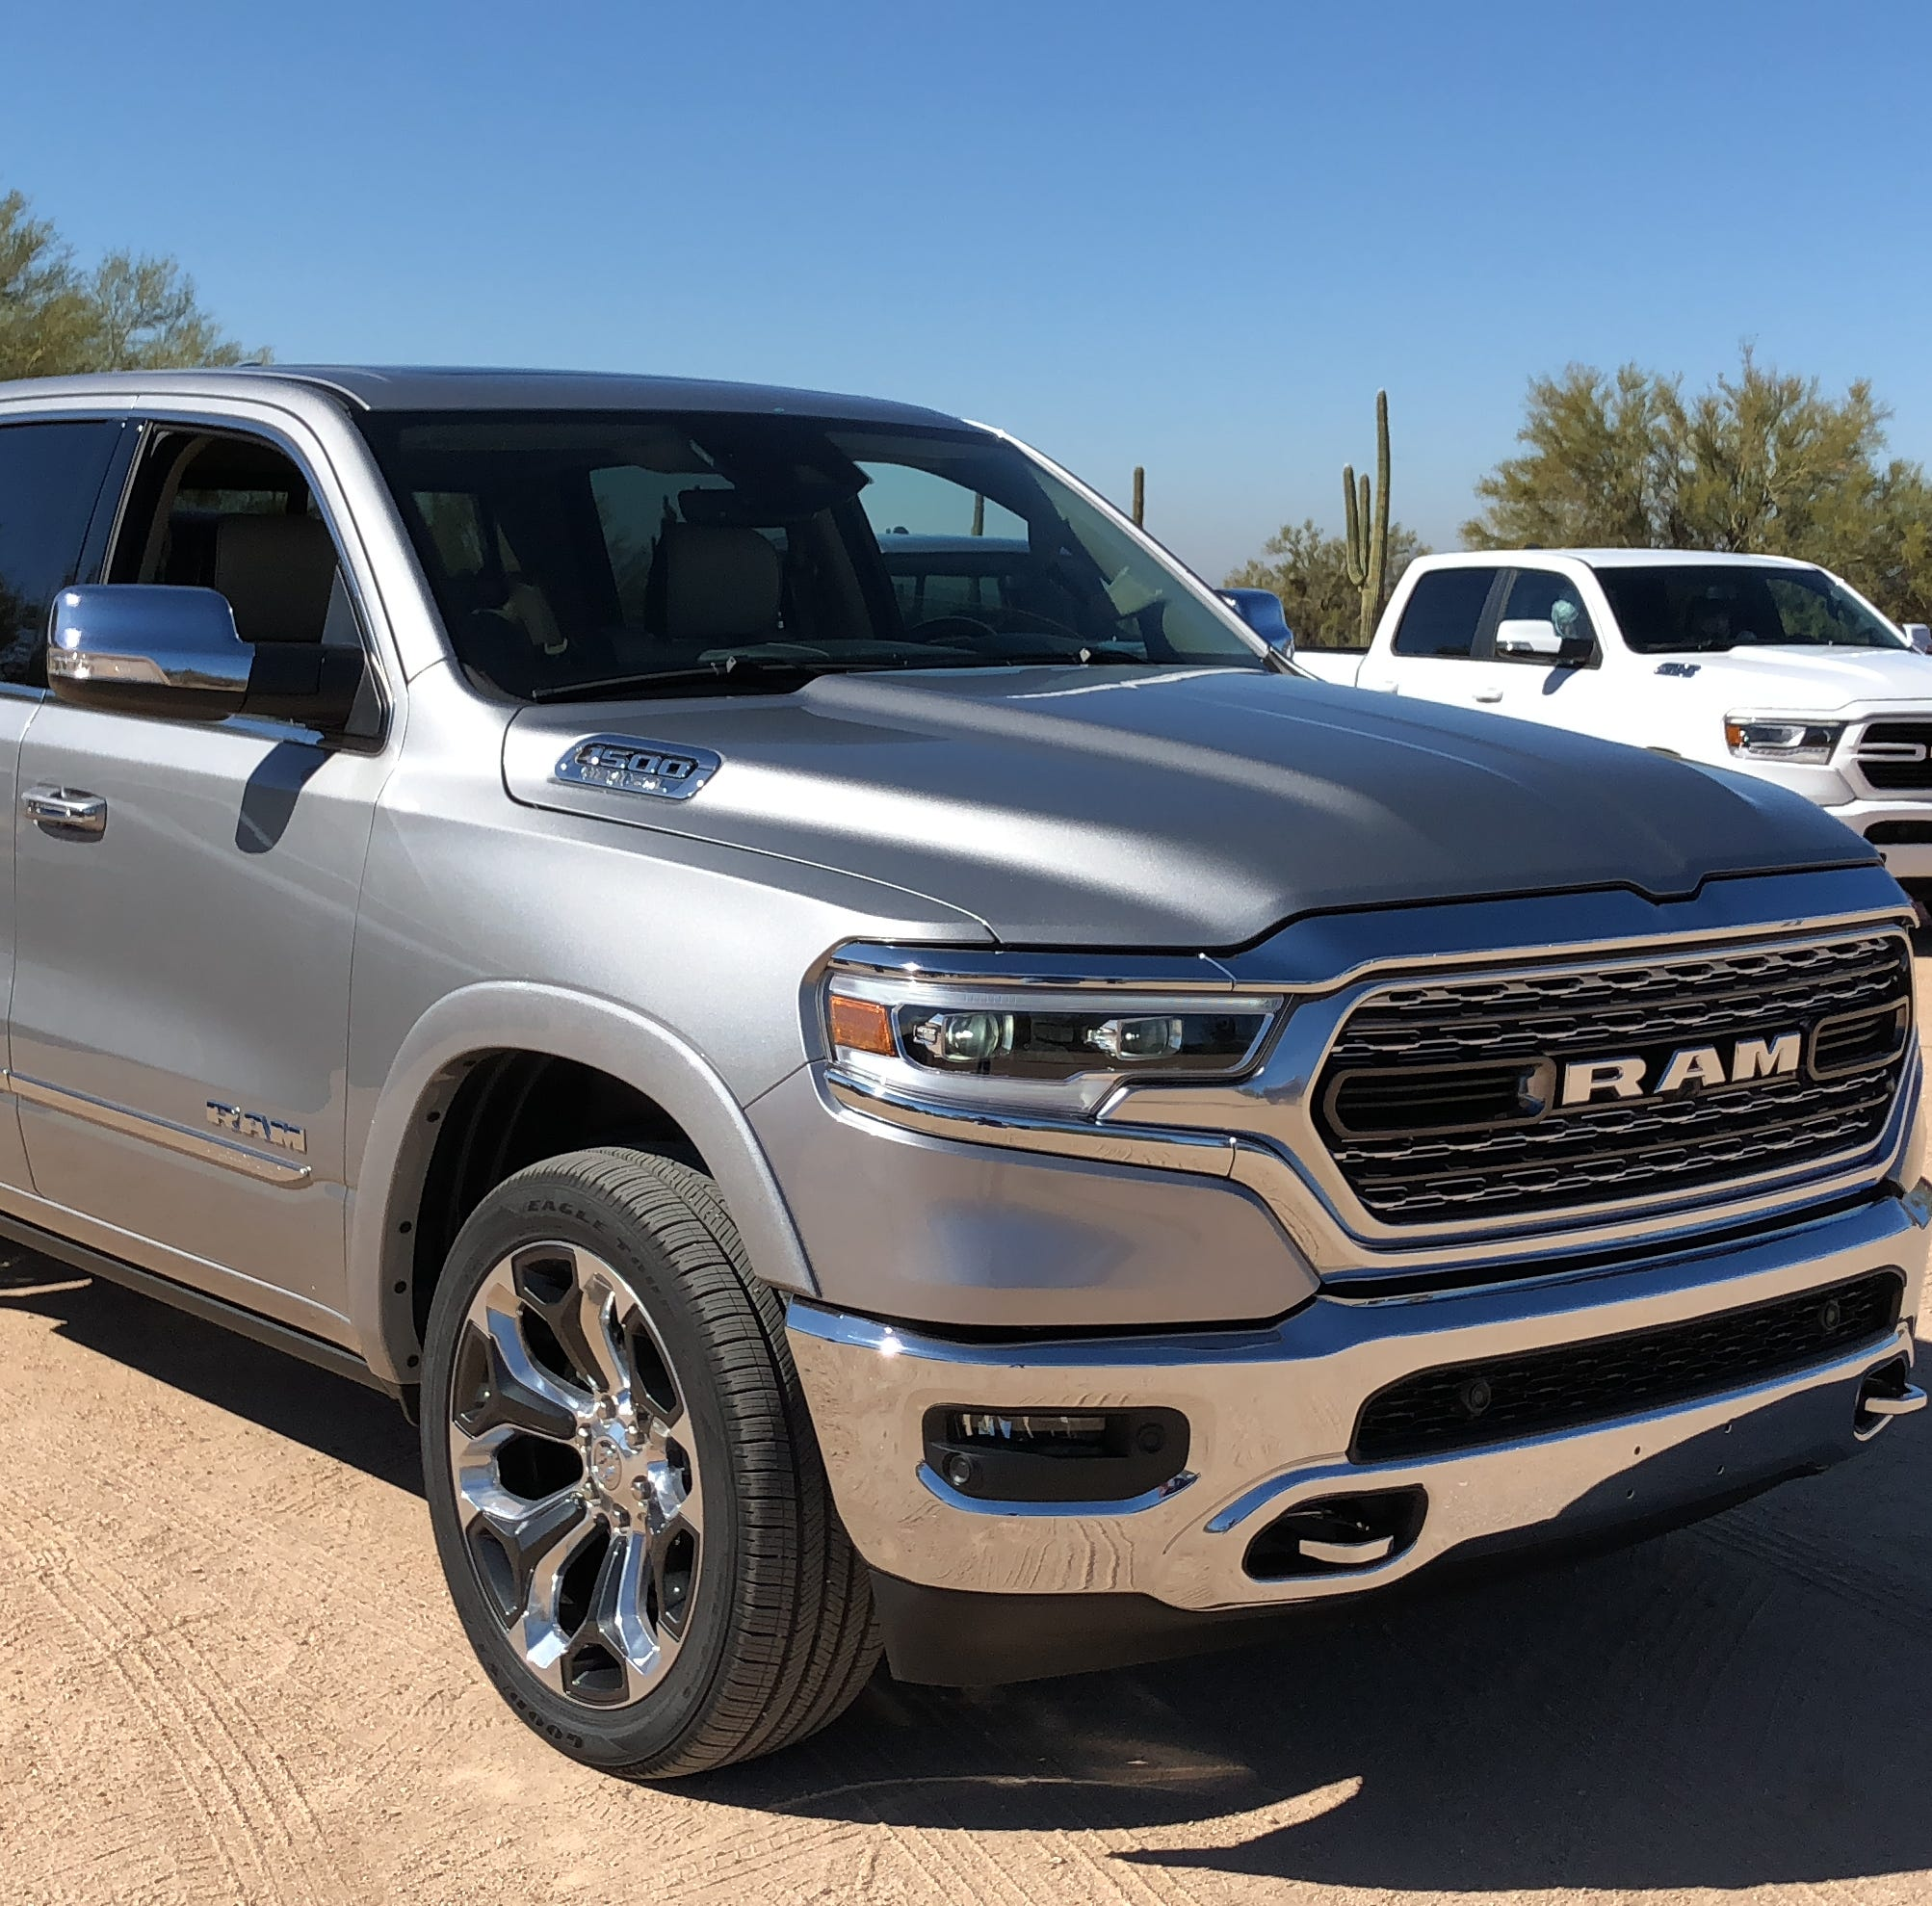 Ram 1500 pickup nabs first big win in the Truck War of 2018